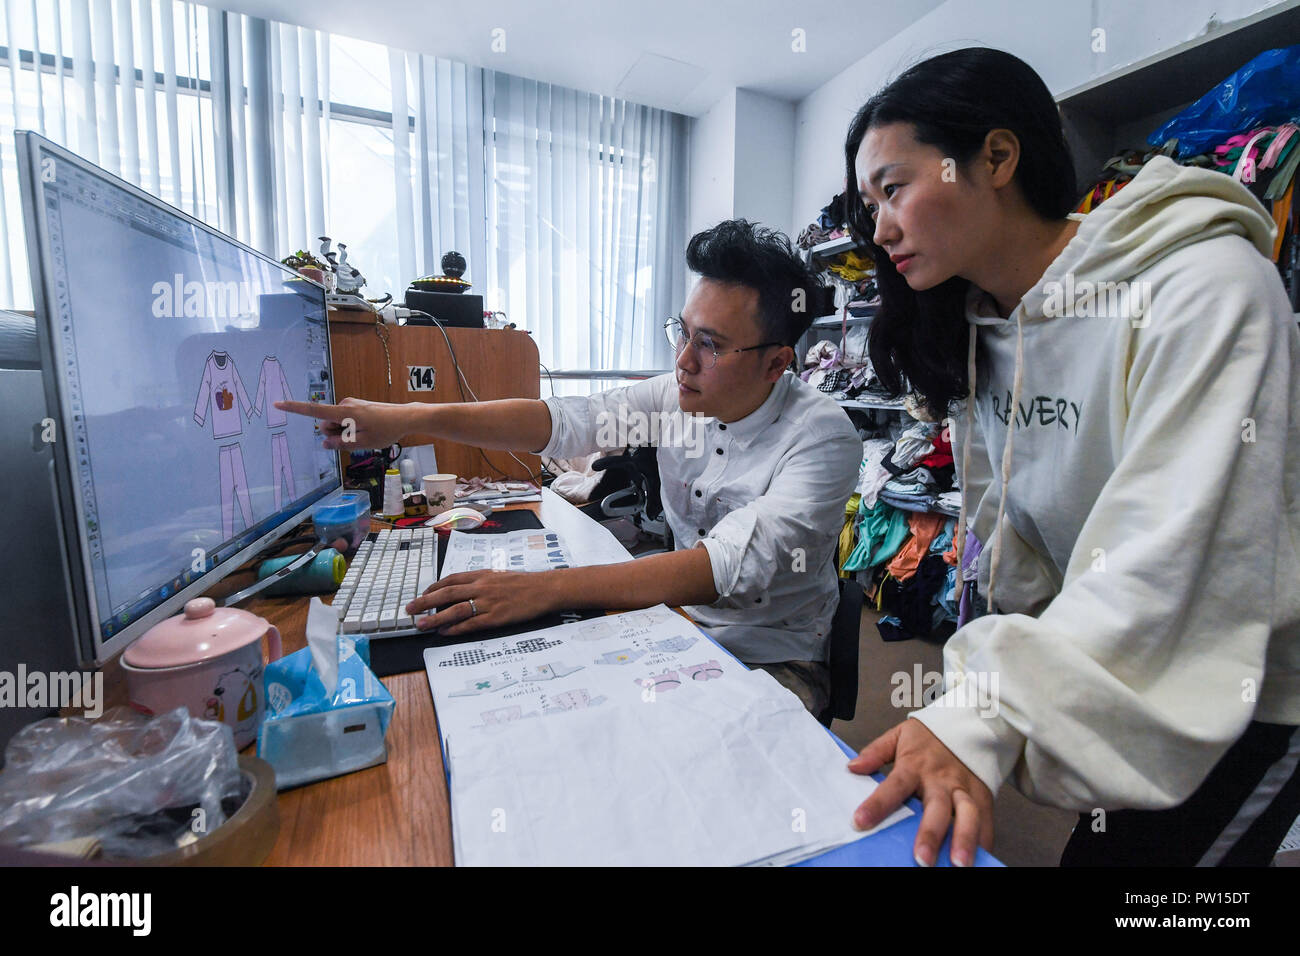 181011 Huzhou Oct 11 2018 Xinhua A Fashion Designer Discusses Children S Clothing Designs With A Colleague At A Children S Clothing Design Center In Zhili Town Of Huzhou East China S Zhejiang